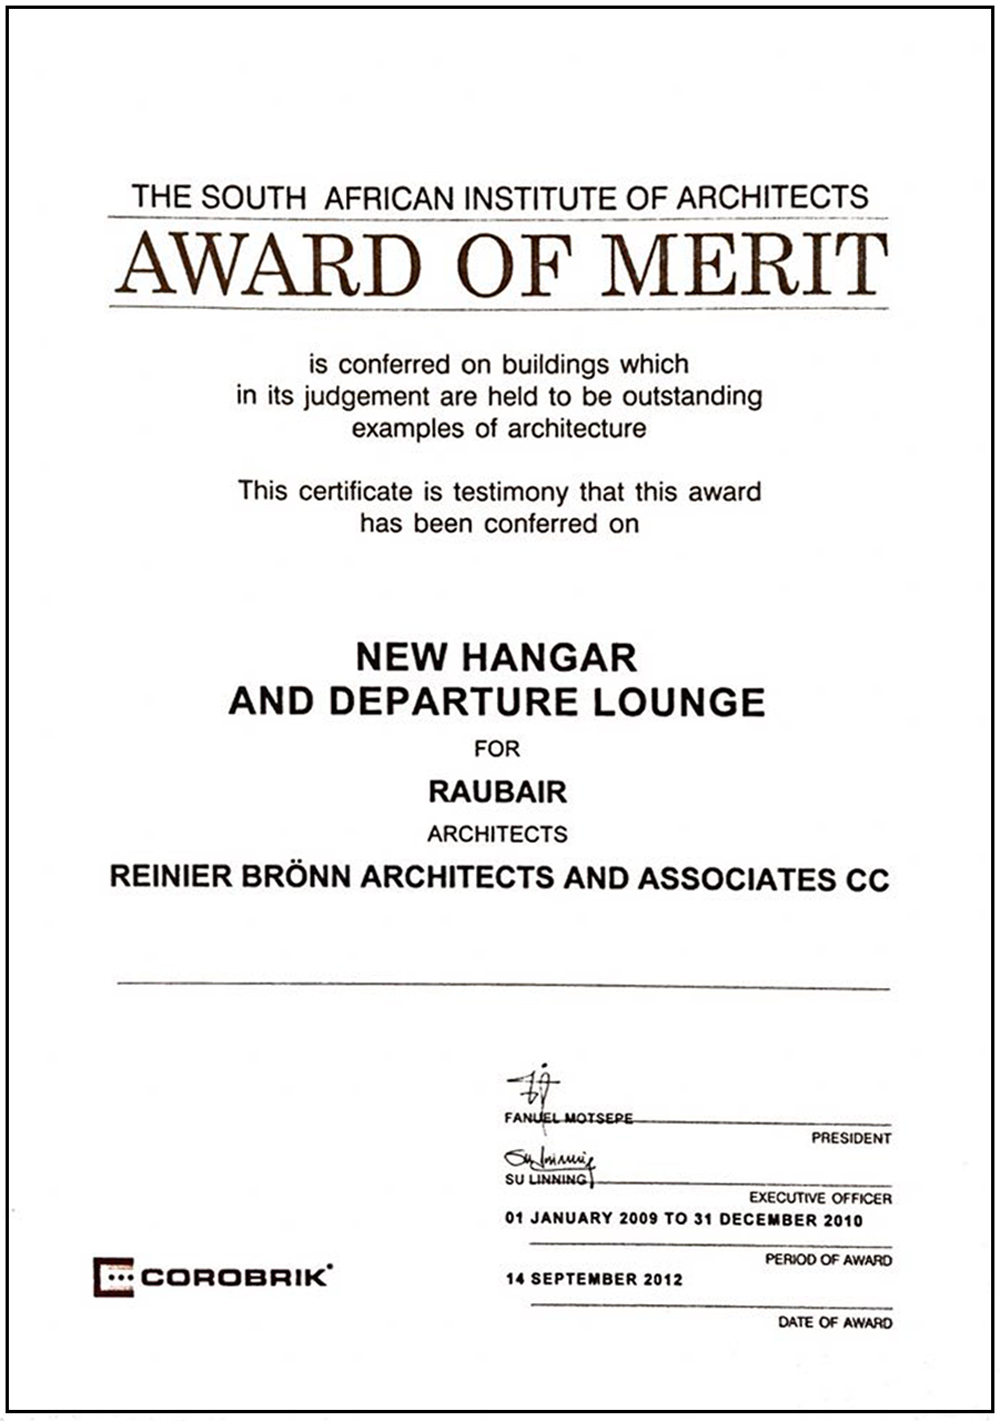 SAIA-Award-of-Merit